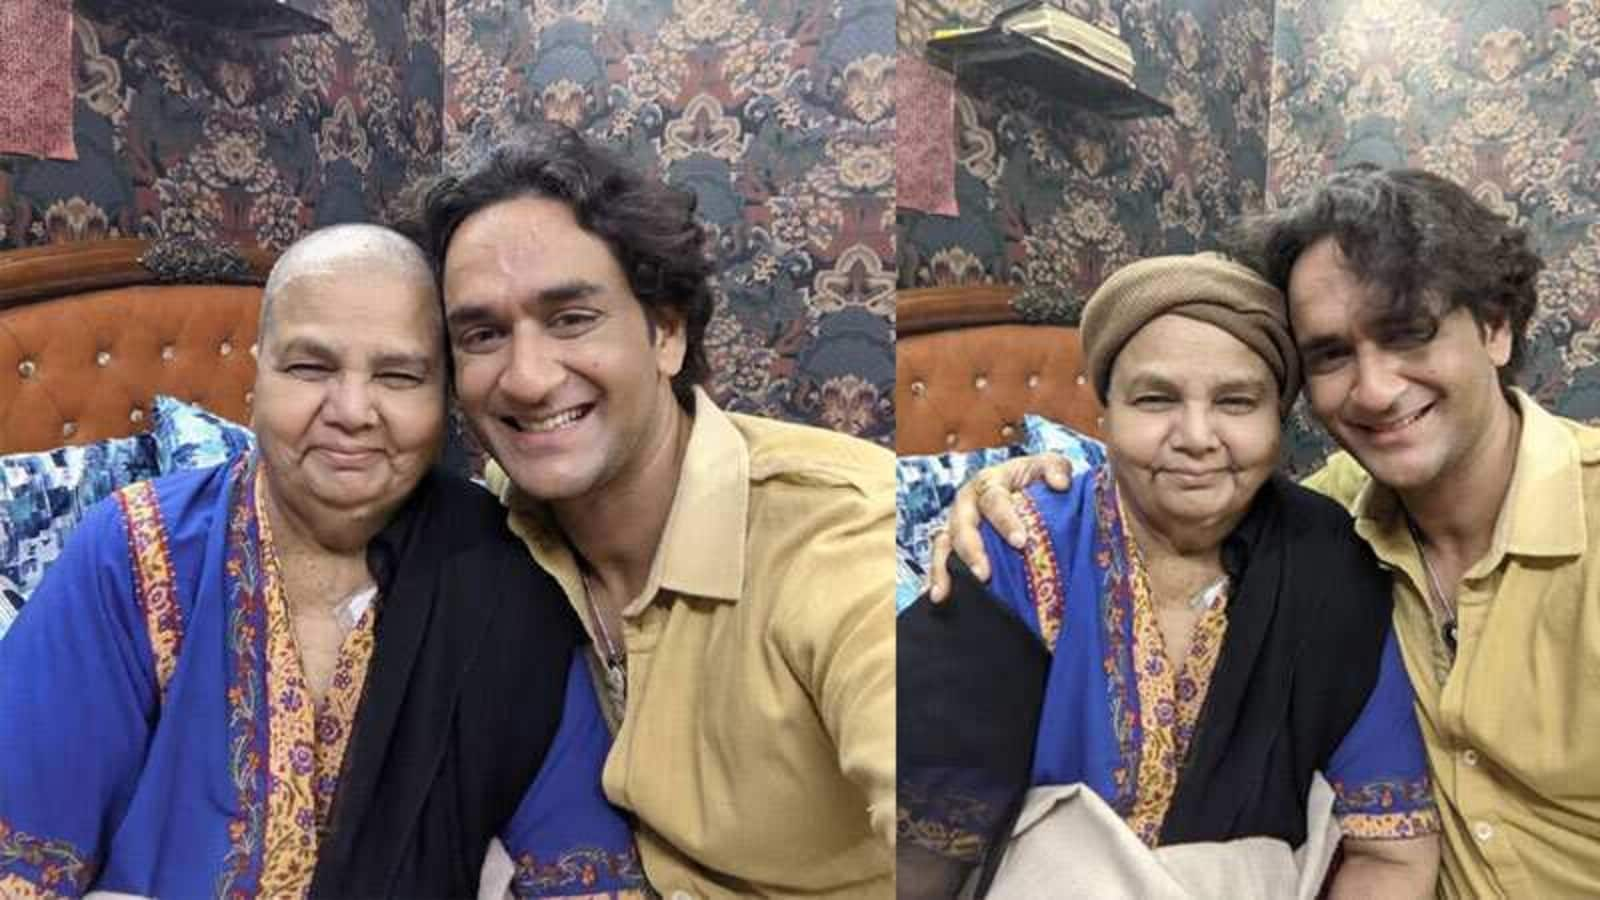 Vikas Gupta meets Rakhi Sawant's mom, says 'I think her new hairstyle is cool'